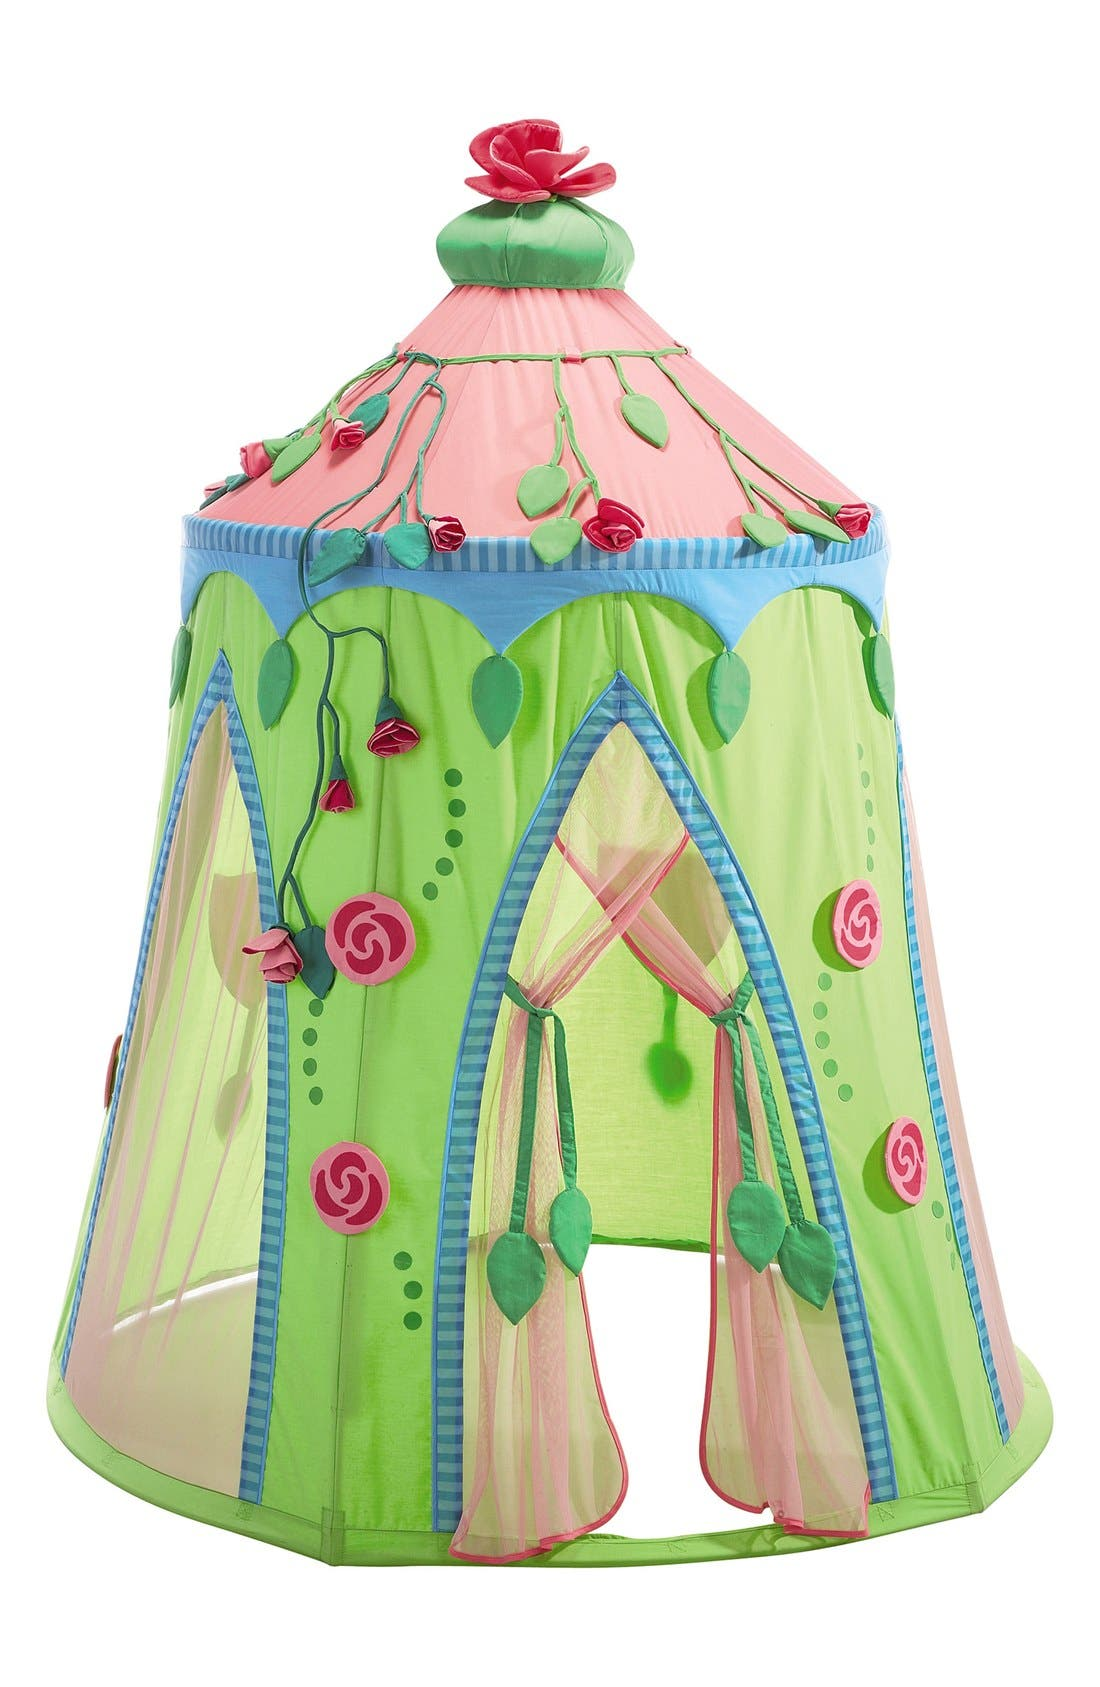 HABA 'Rose Fairy' Play Tent